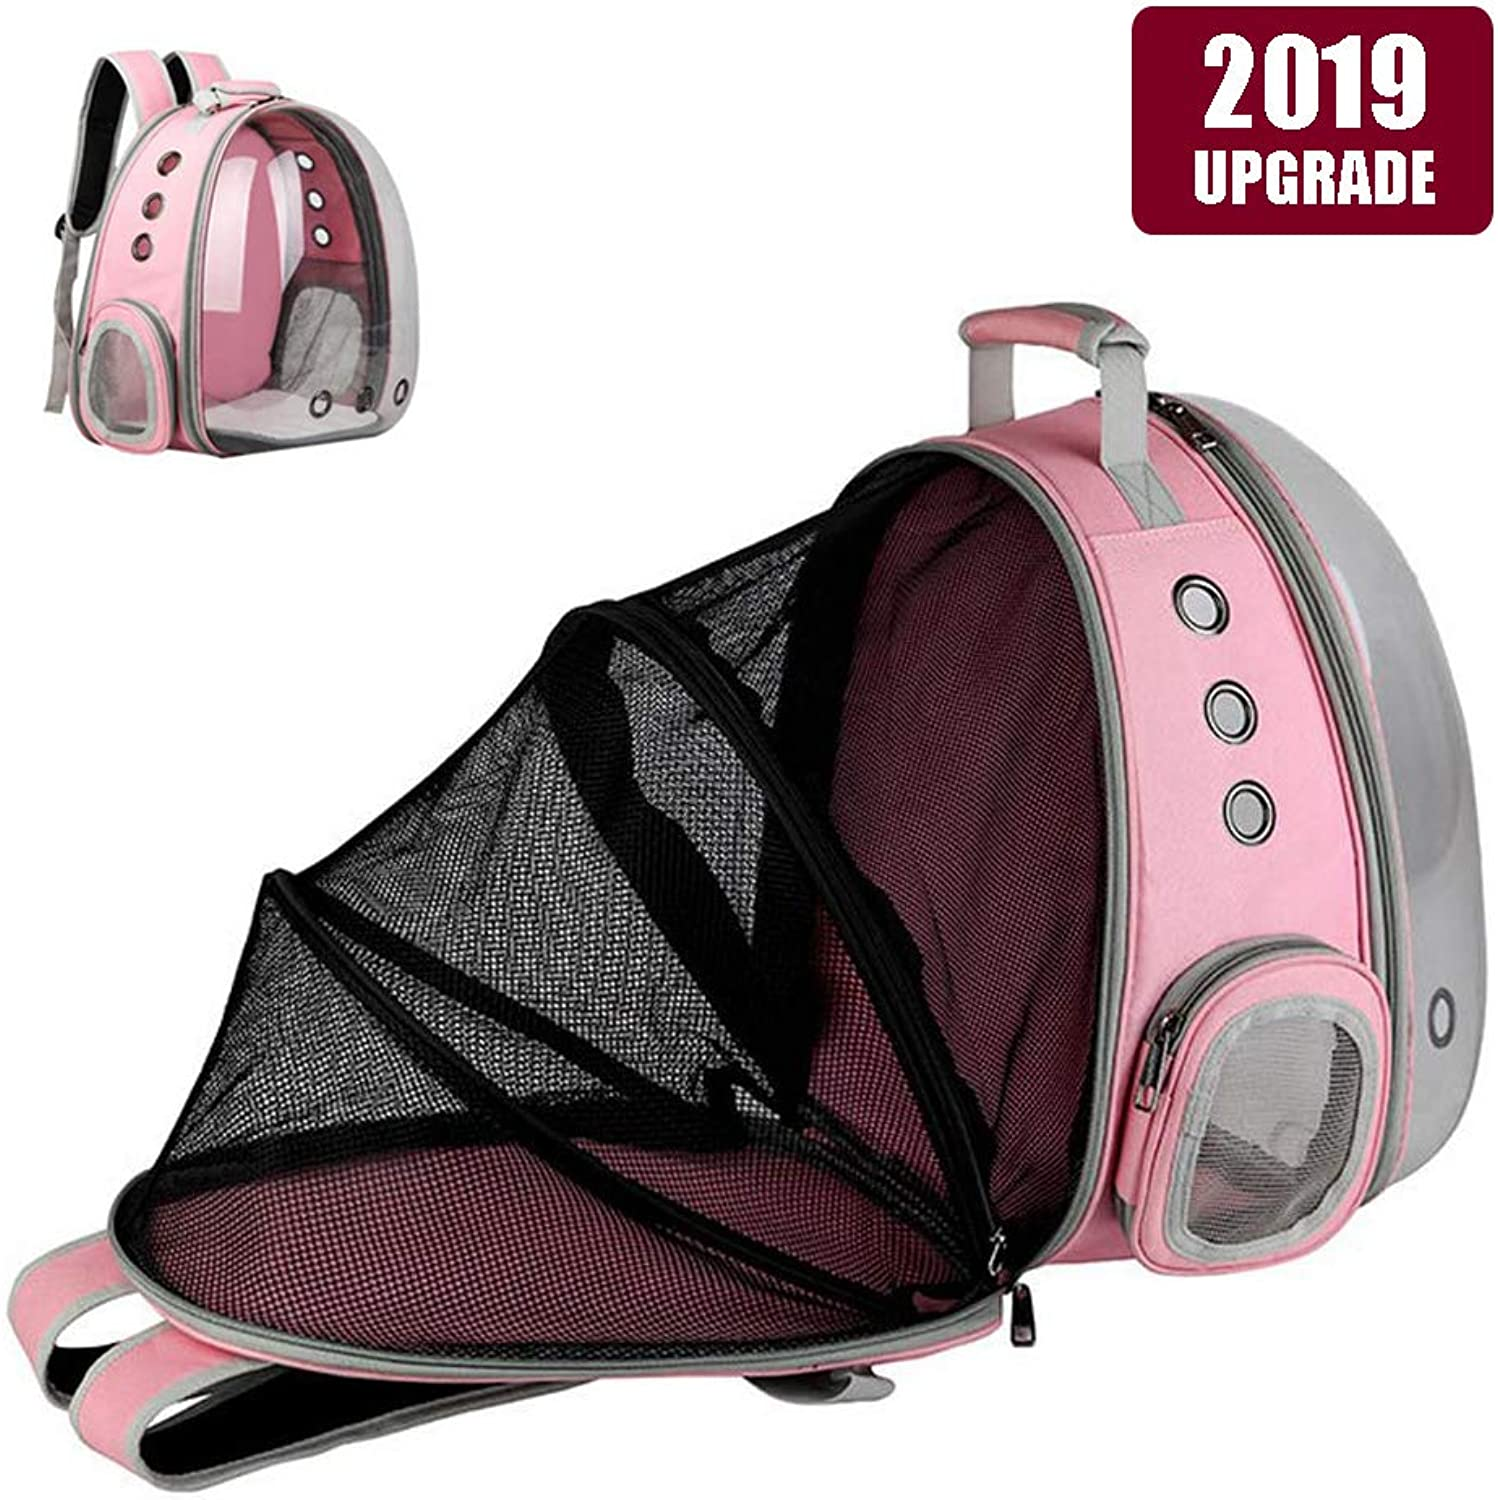 Expandable Pet Bubble Backpack,Hamkaw [2019 Newest] Foldable Transparent Panoramic Cat Carrier with 9 Venting Hole Breathable Portable Pet Carrier Backpack Travel Space Capsule for Cat Dog